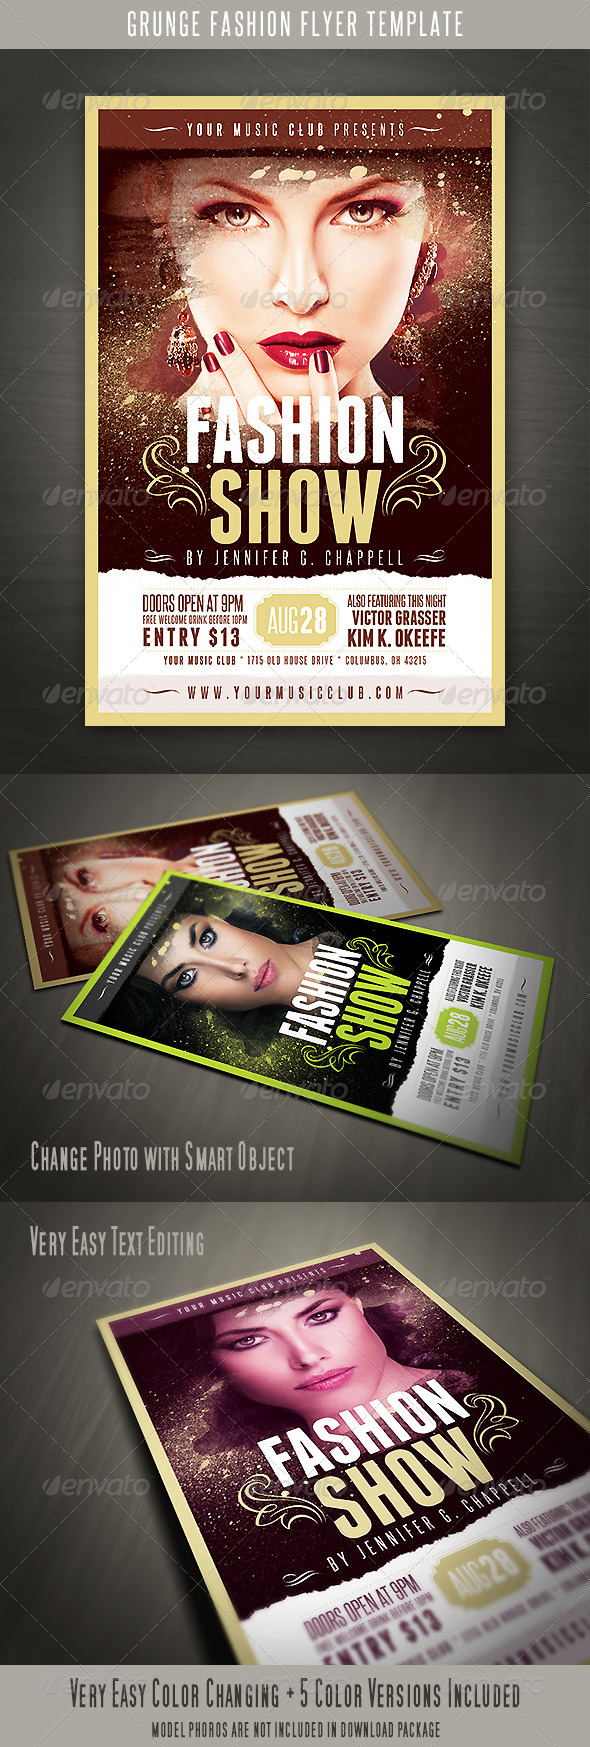 Grunge Fashion Flyer - Events Flyers